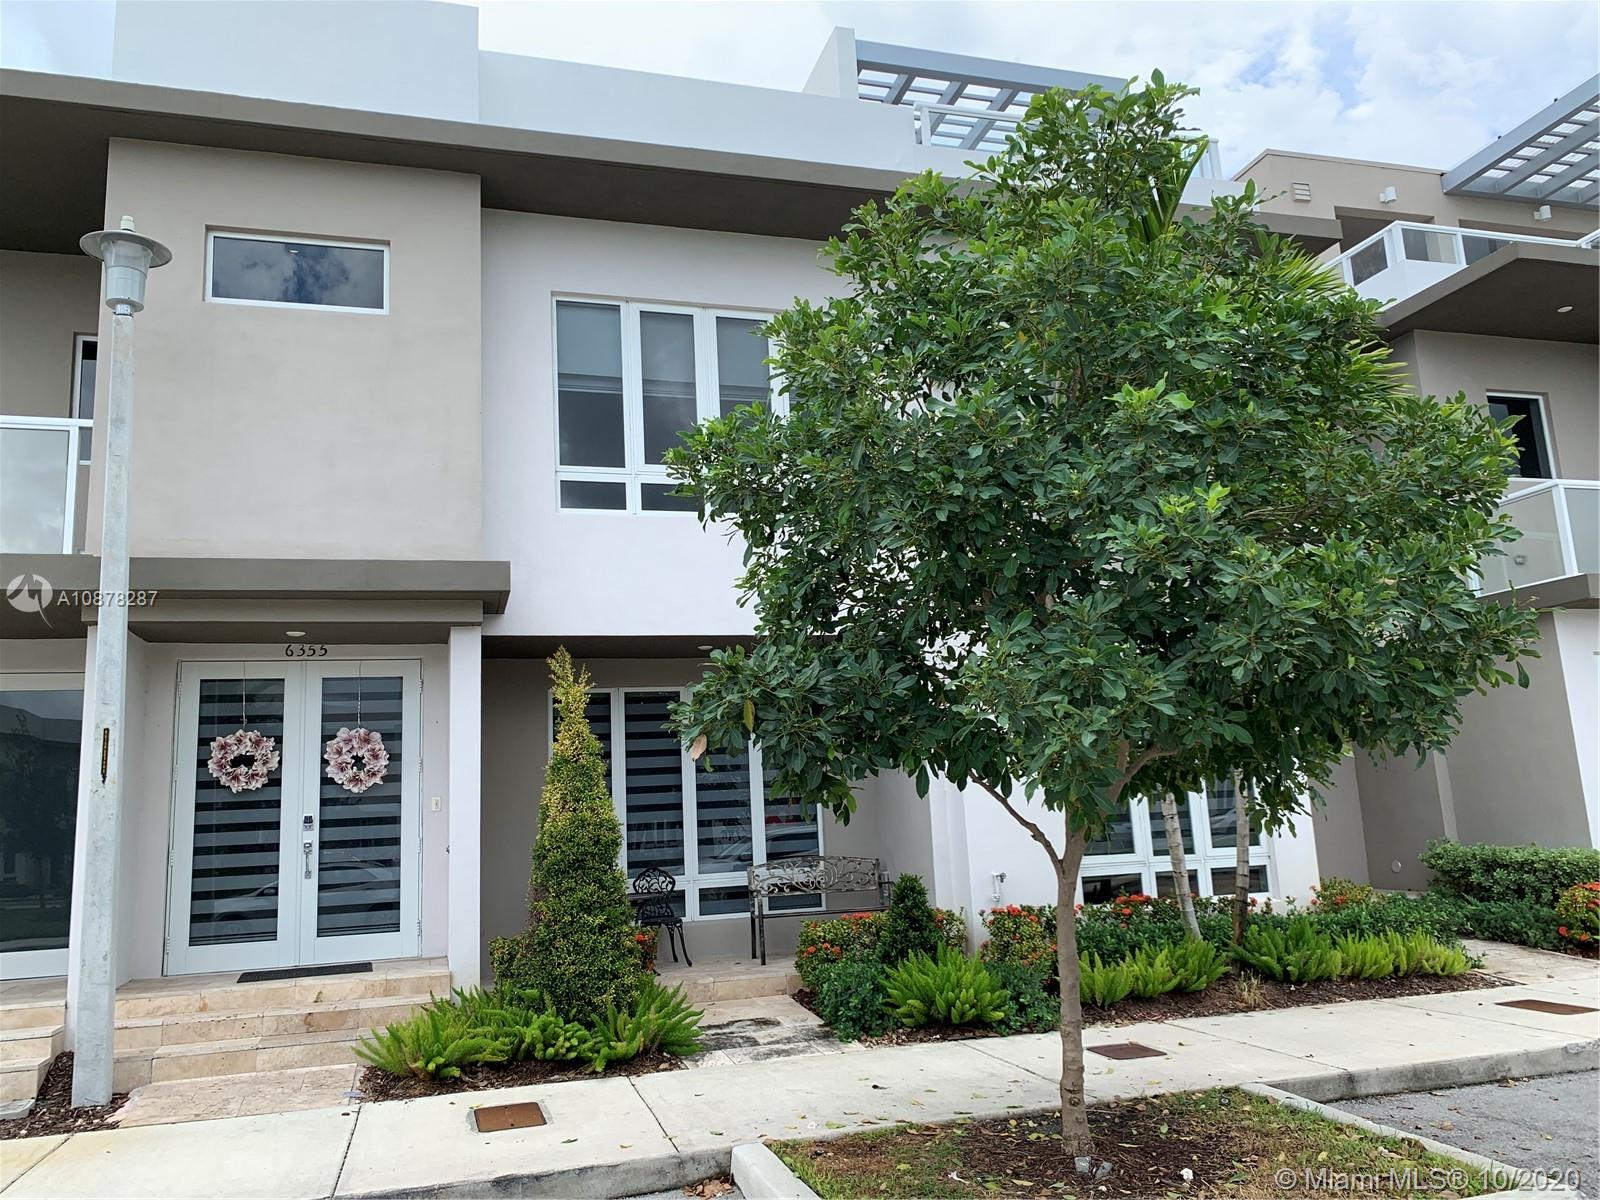 Wonderful! 3 bedrooms and 2.5 bathrooms, 2 story Townhouse centrally located. Top of the line stainless steel appliances. Impact windows all through the house. Garden view with park in front of the house. Excellent location, close to A+ schools.